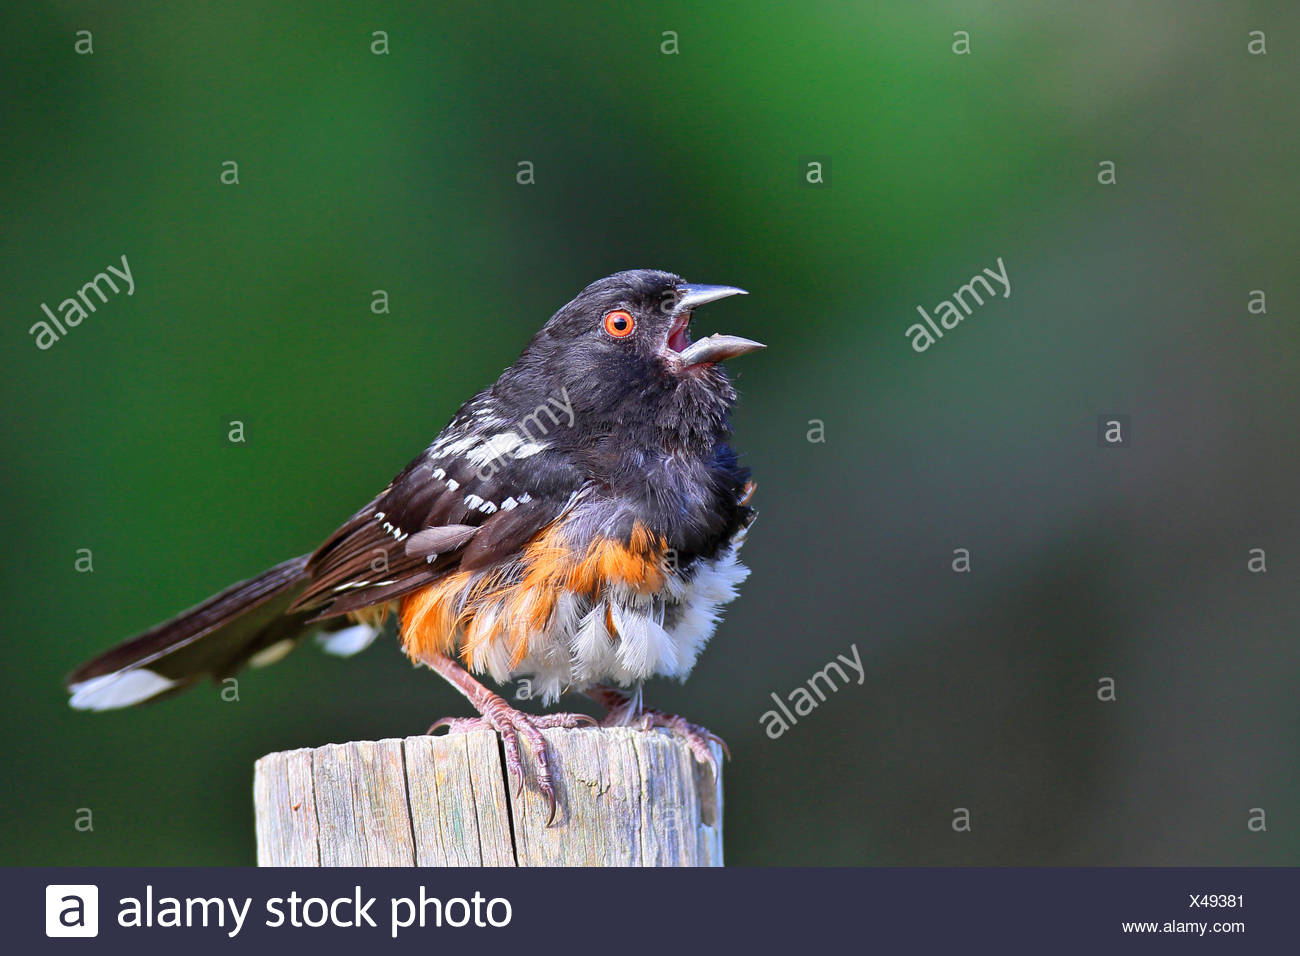 Spotted towhee (Pipilo maculatus), male sitting on a post and singing, Canada, Vancouver Island - Stock Image